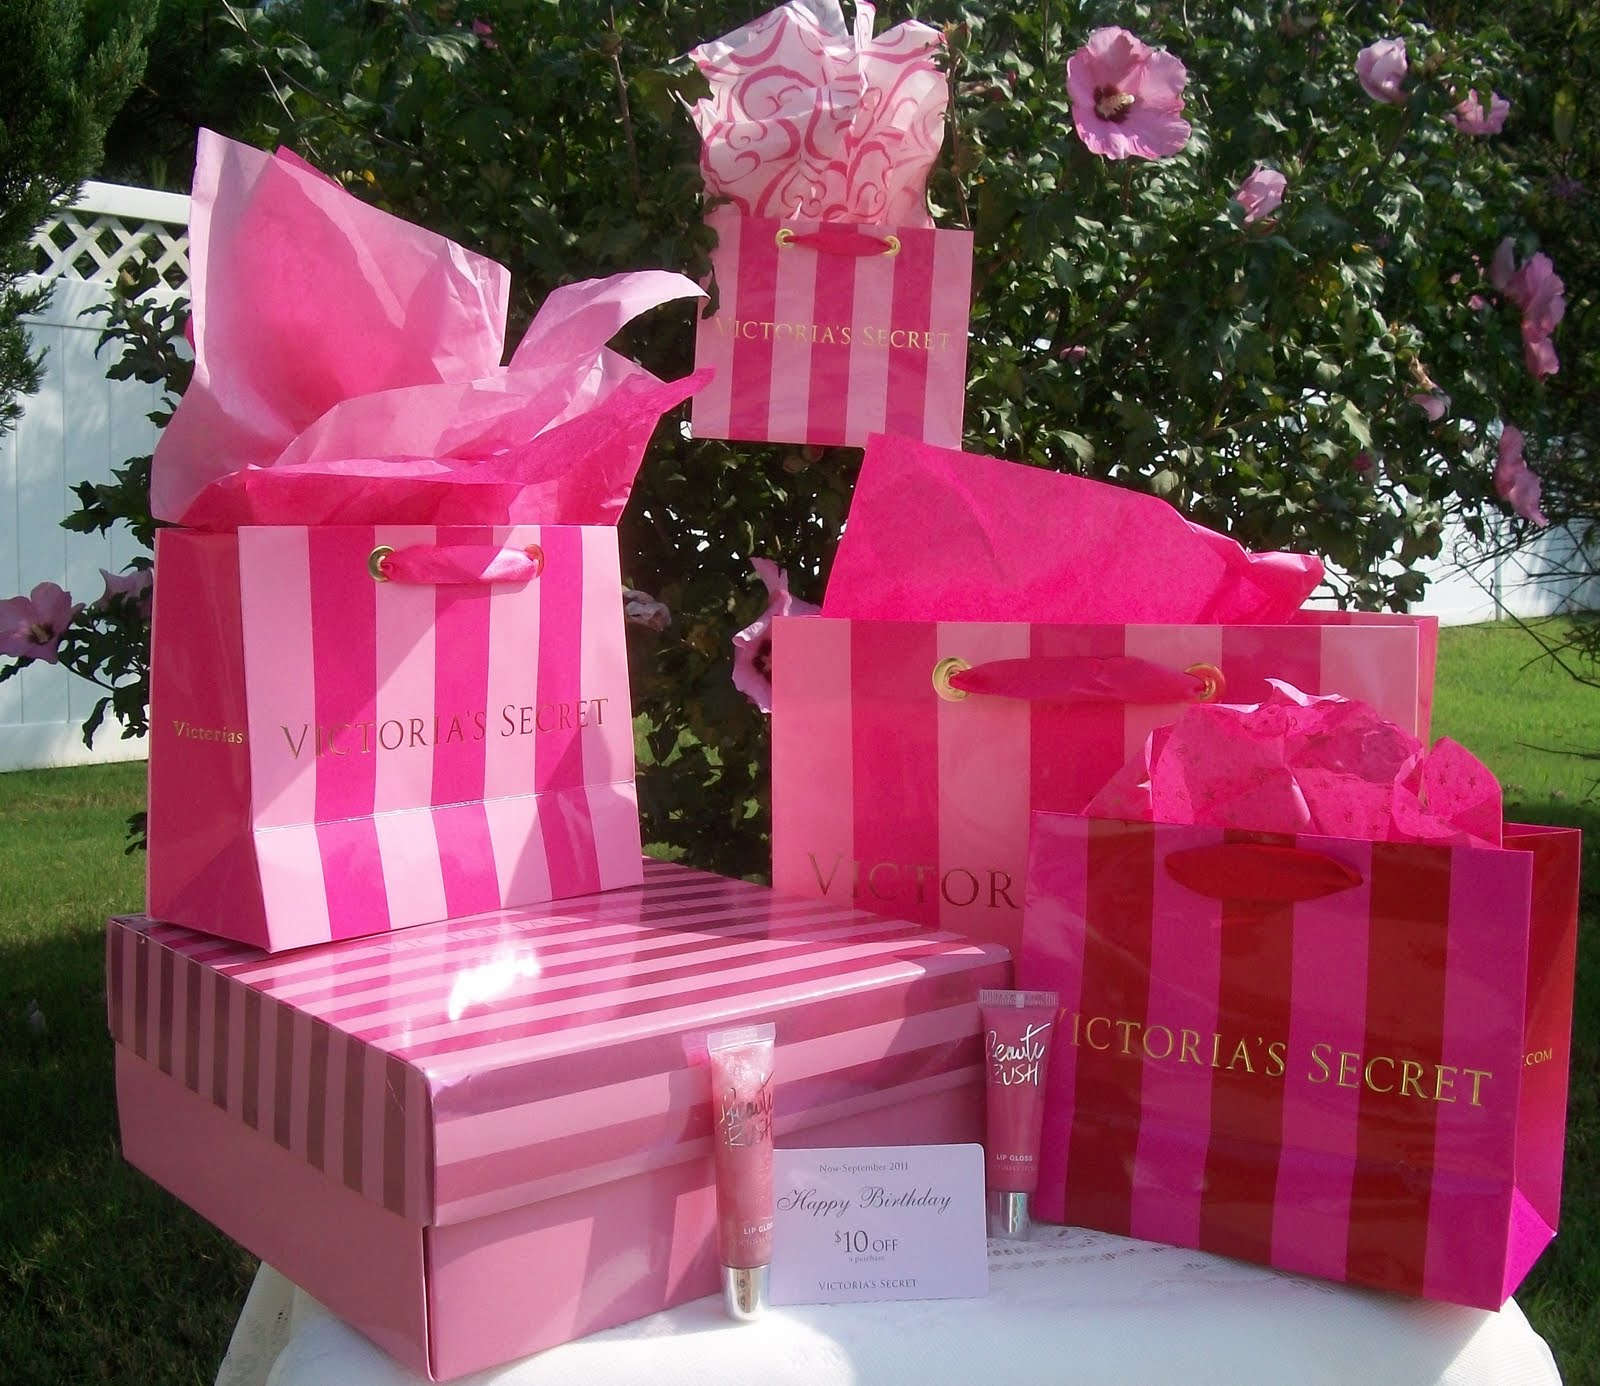 CHIC LUXURIES: Victoria's Secret